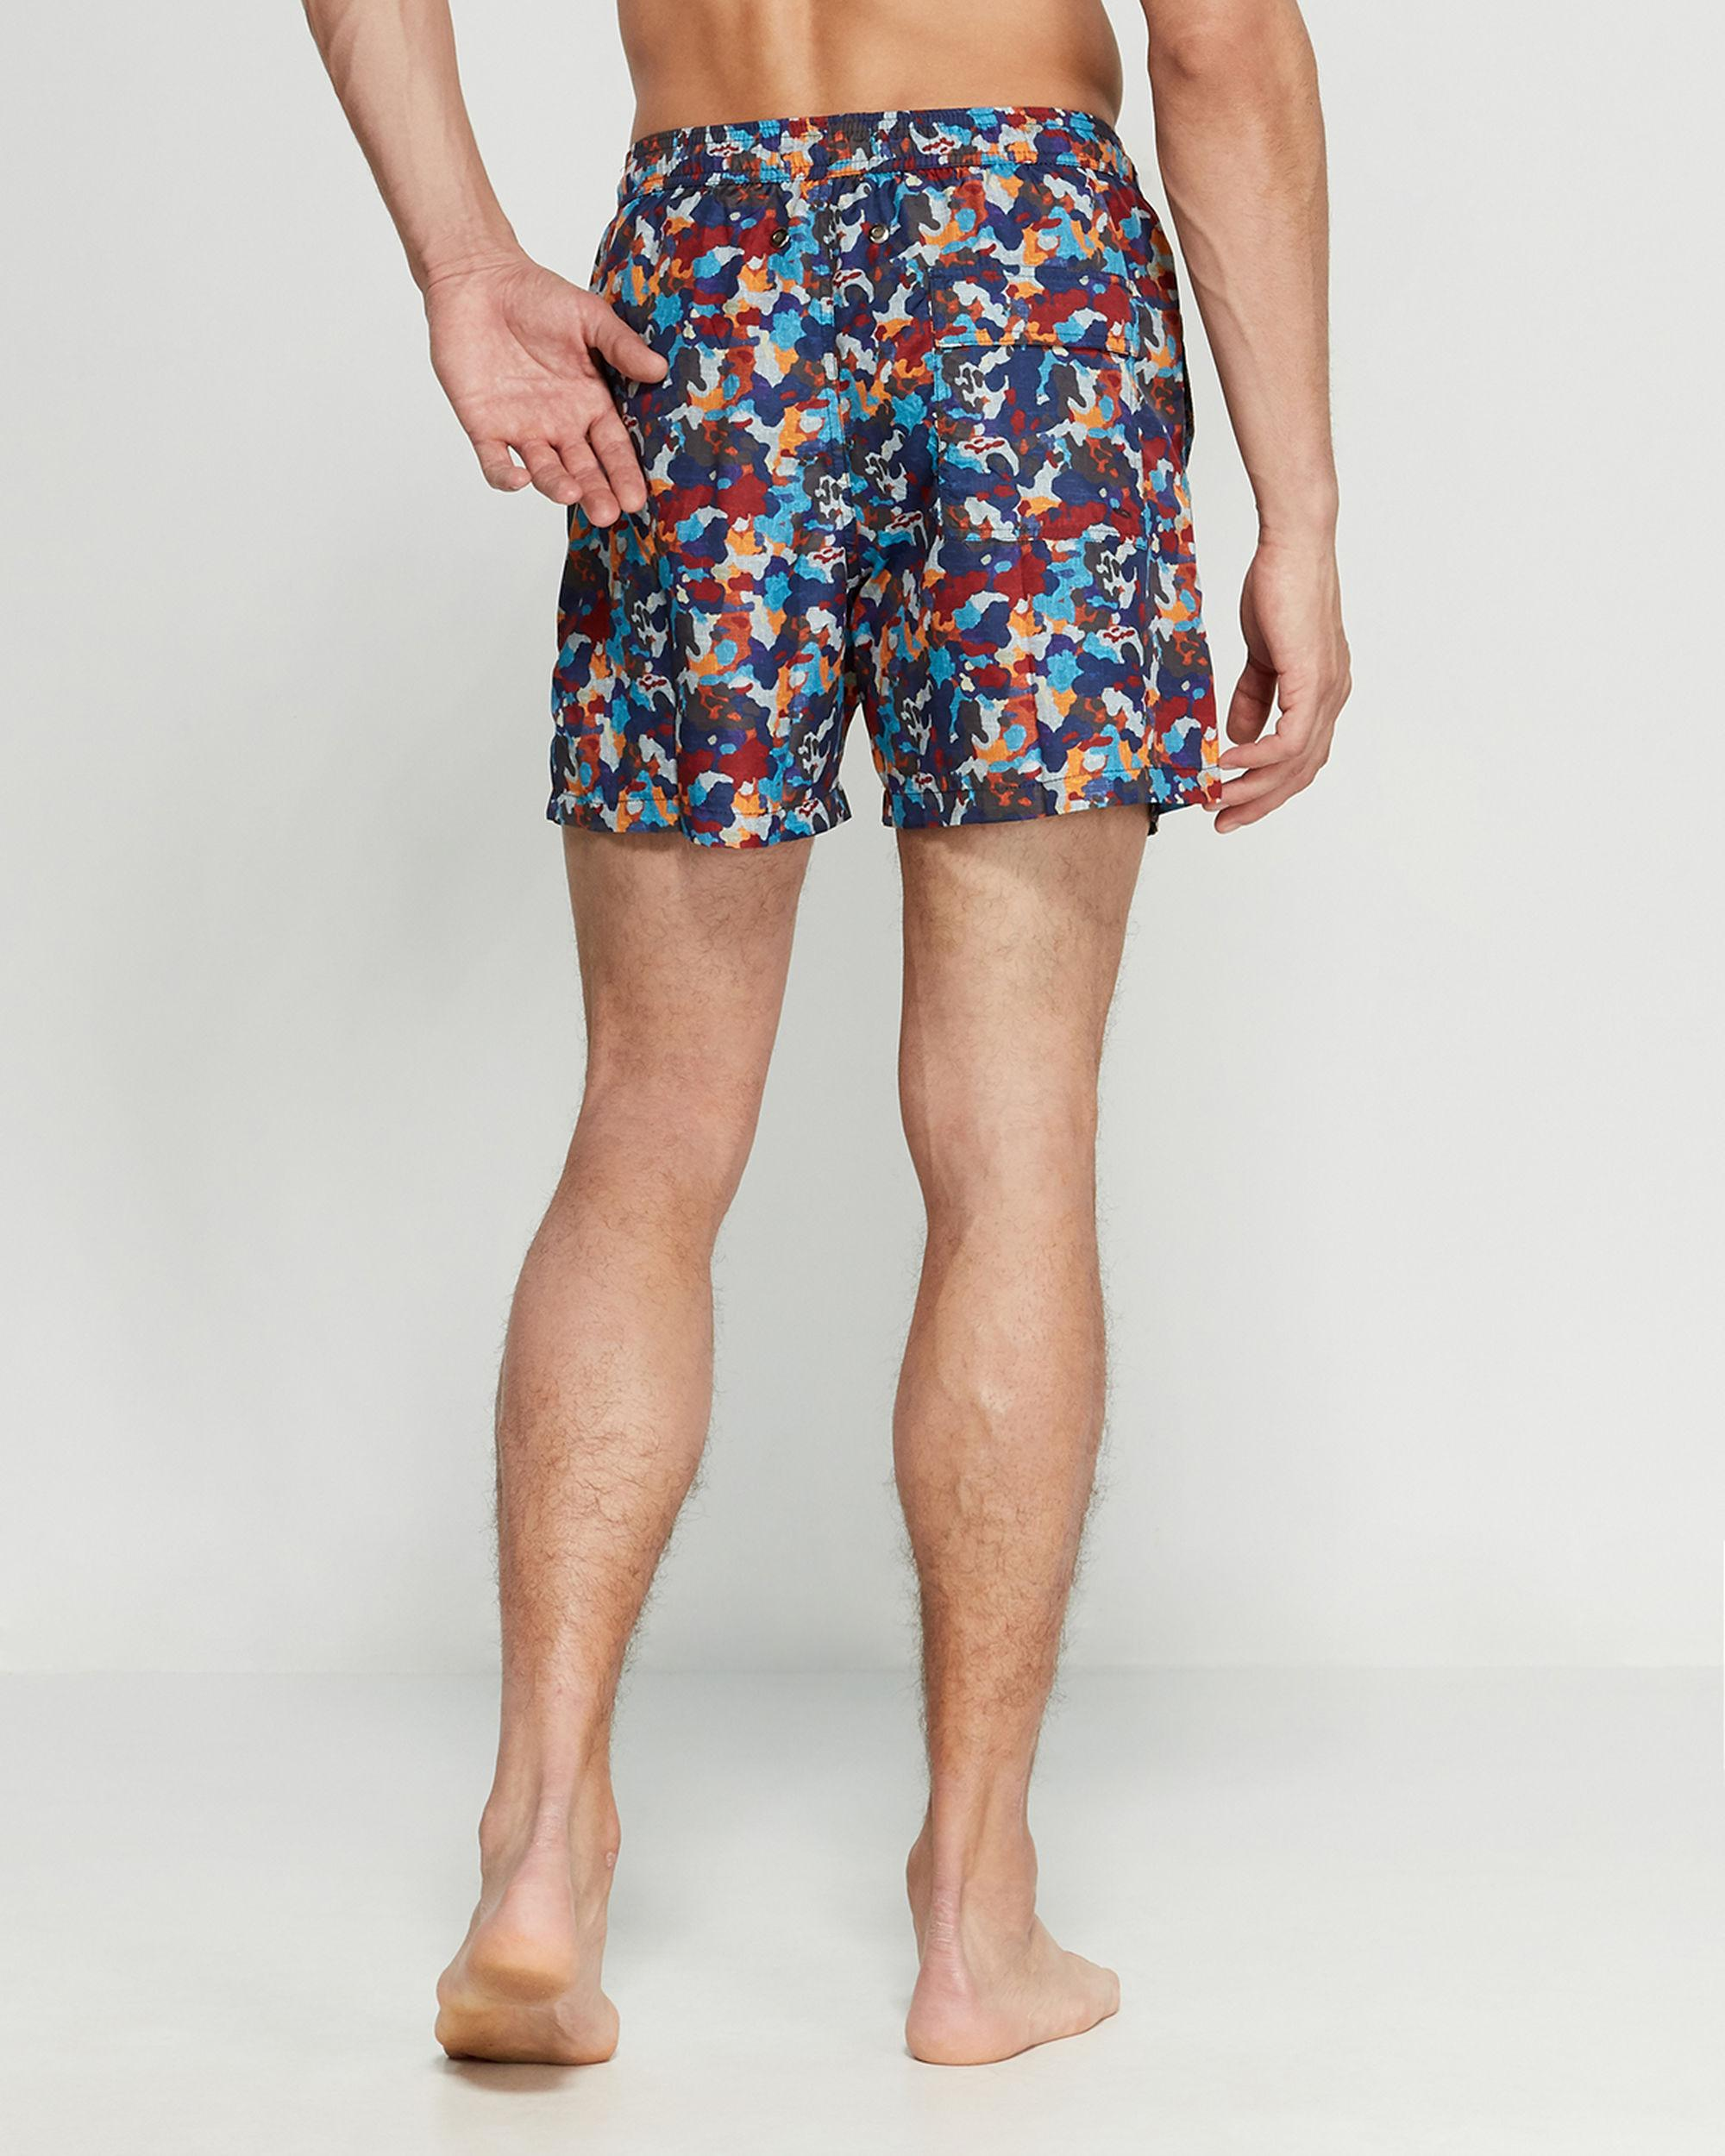 759cfab5fc610 Lyst - Jared Lang Blue & Red Camouflage Swim Trunks in Blue for Men